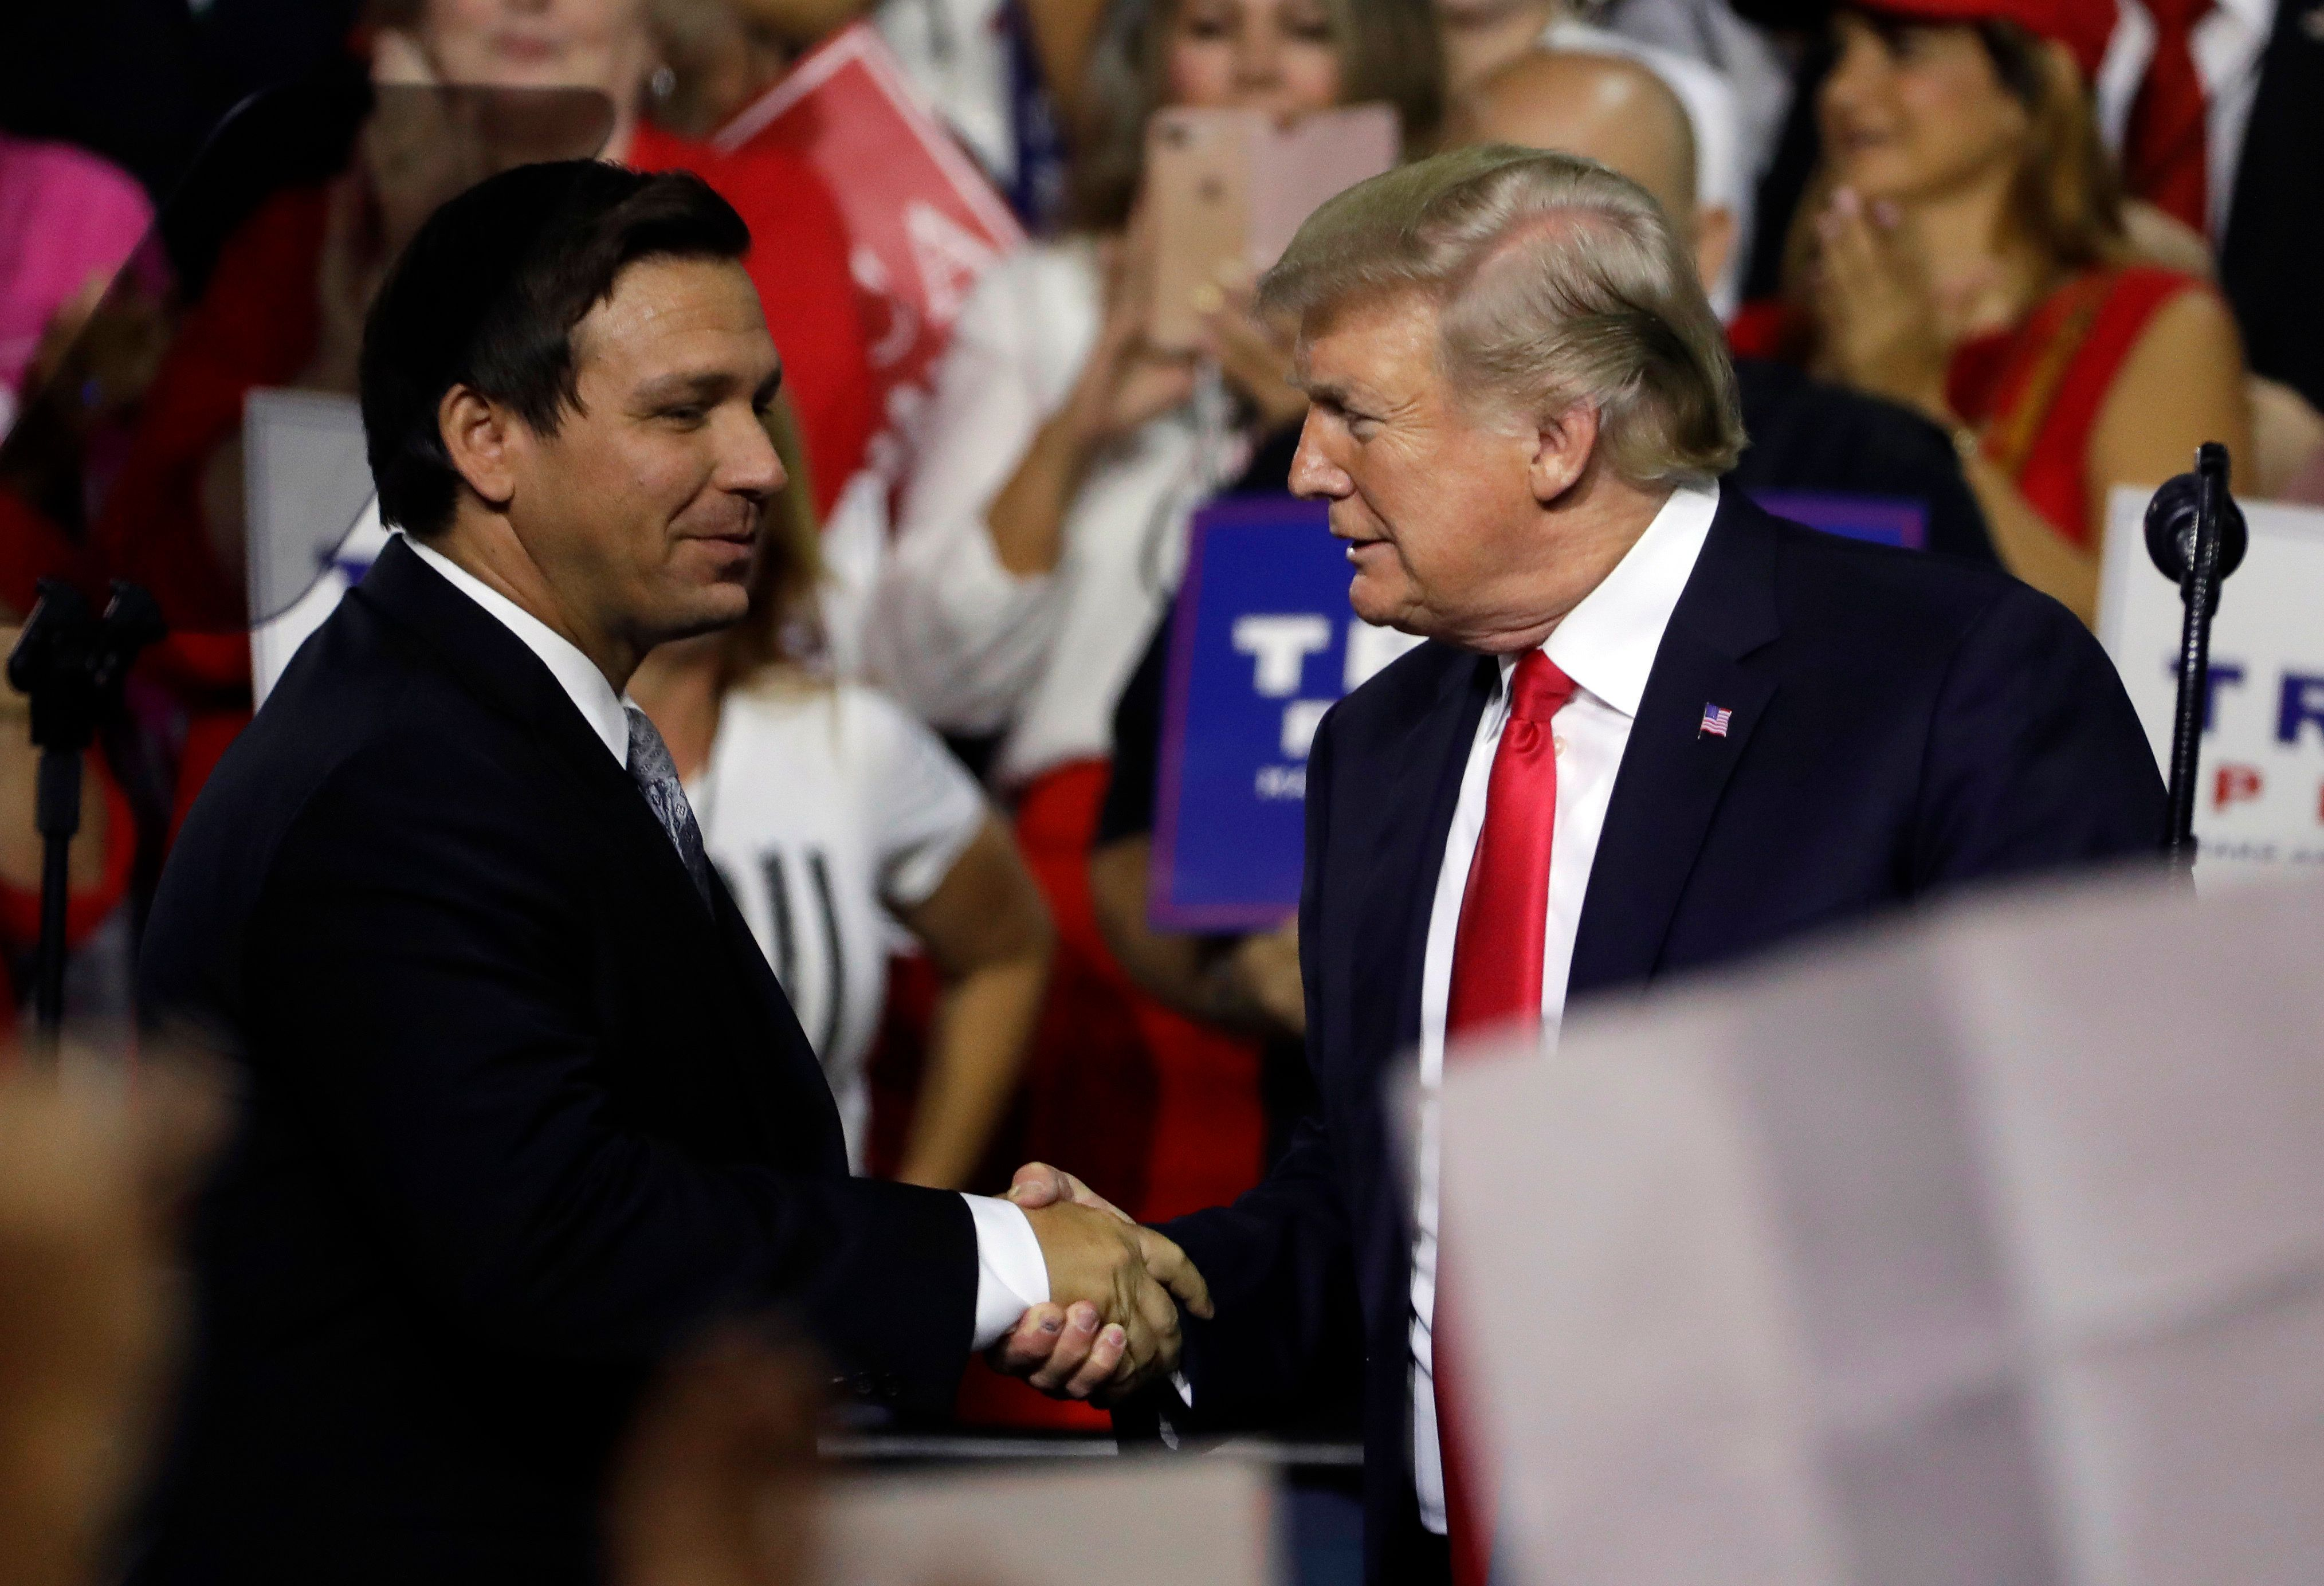 President Donald Trump, right, shakes hands with Florida Republican gubernatorial candidate Ron DeSantis during a rally Tuesday, July 31, 2018, in Tampa, Fla. (AP Photo/Chris O'Meara)